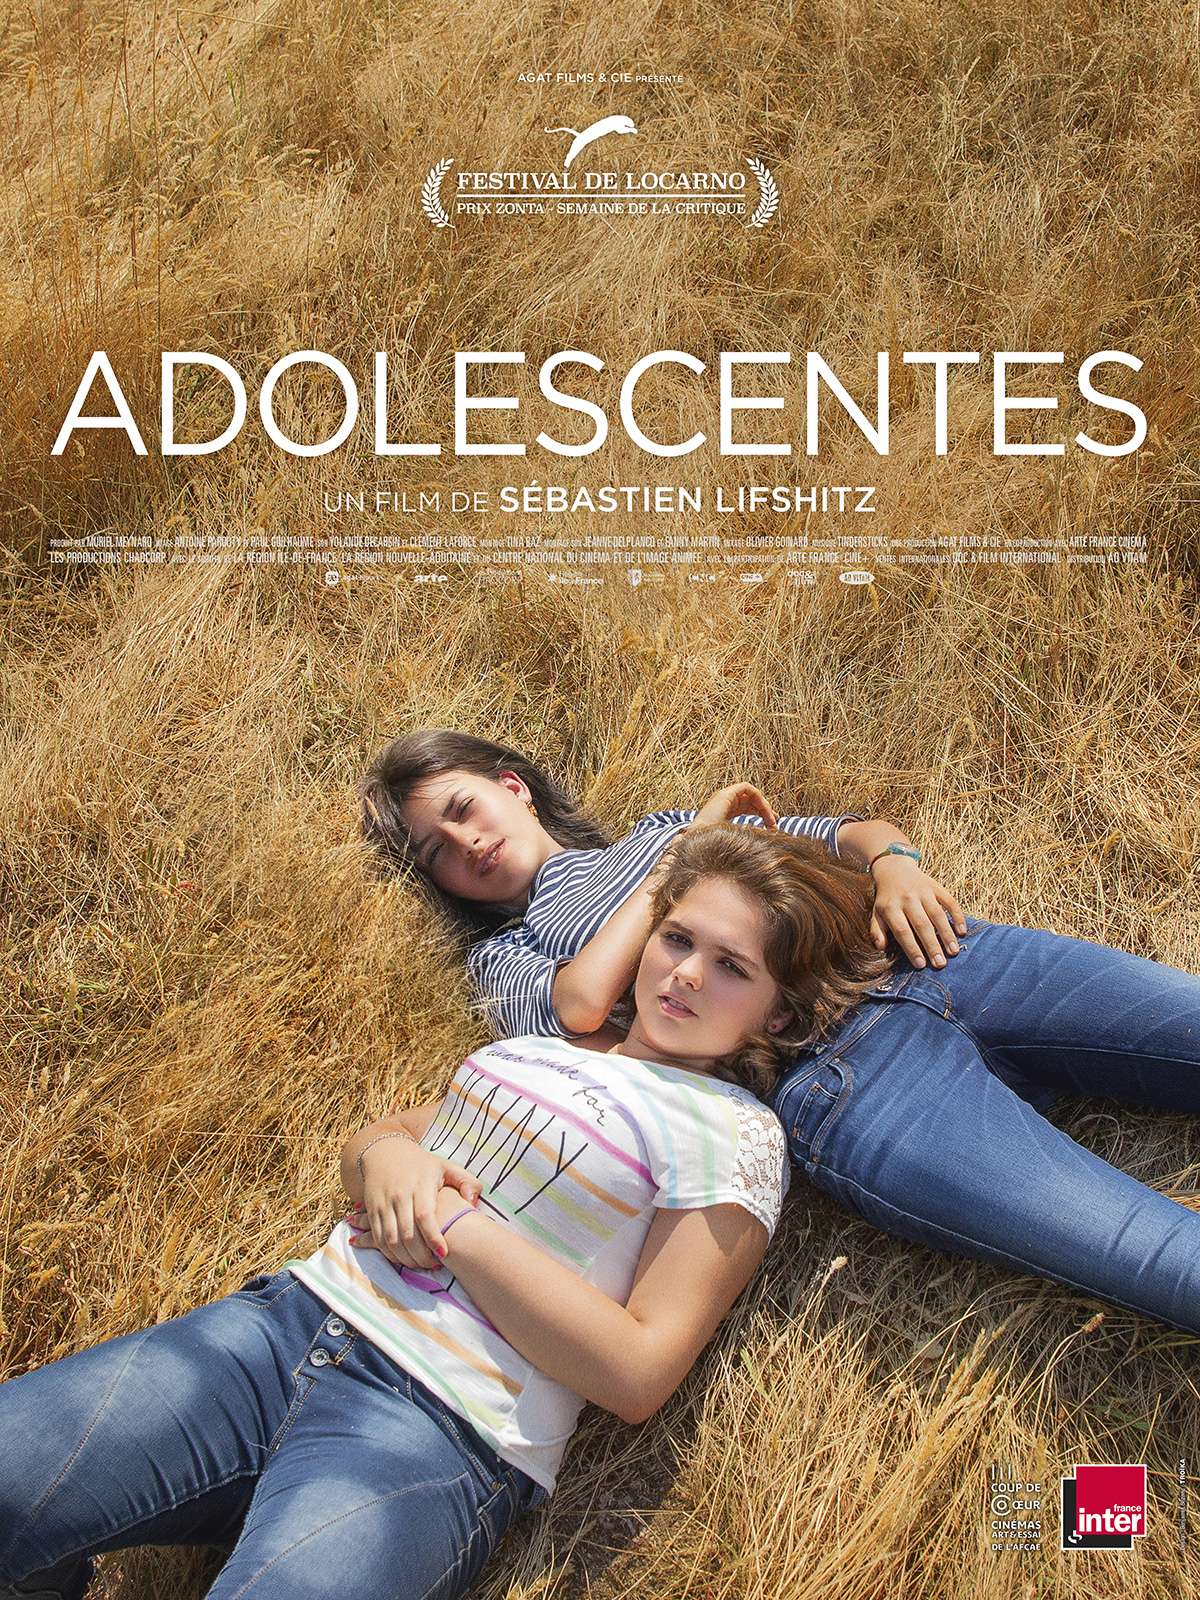 SELECTION 2021 ADOLESCENTES